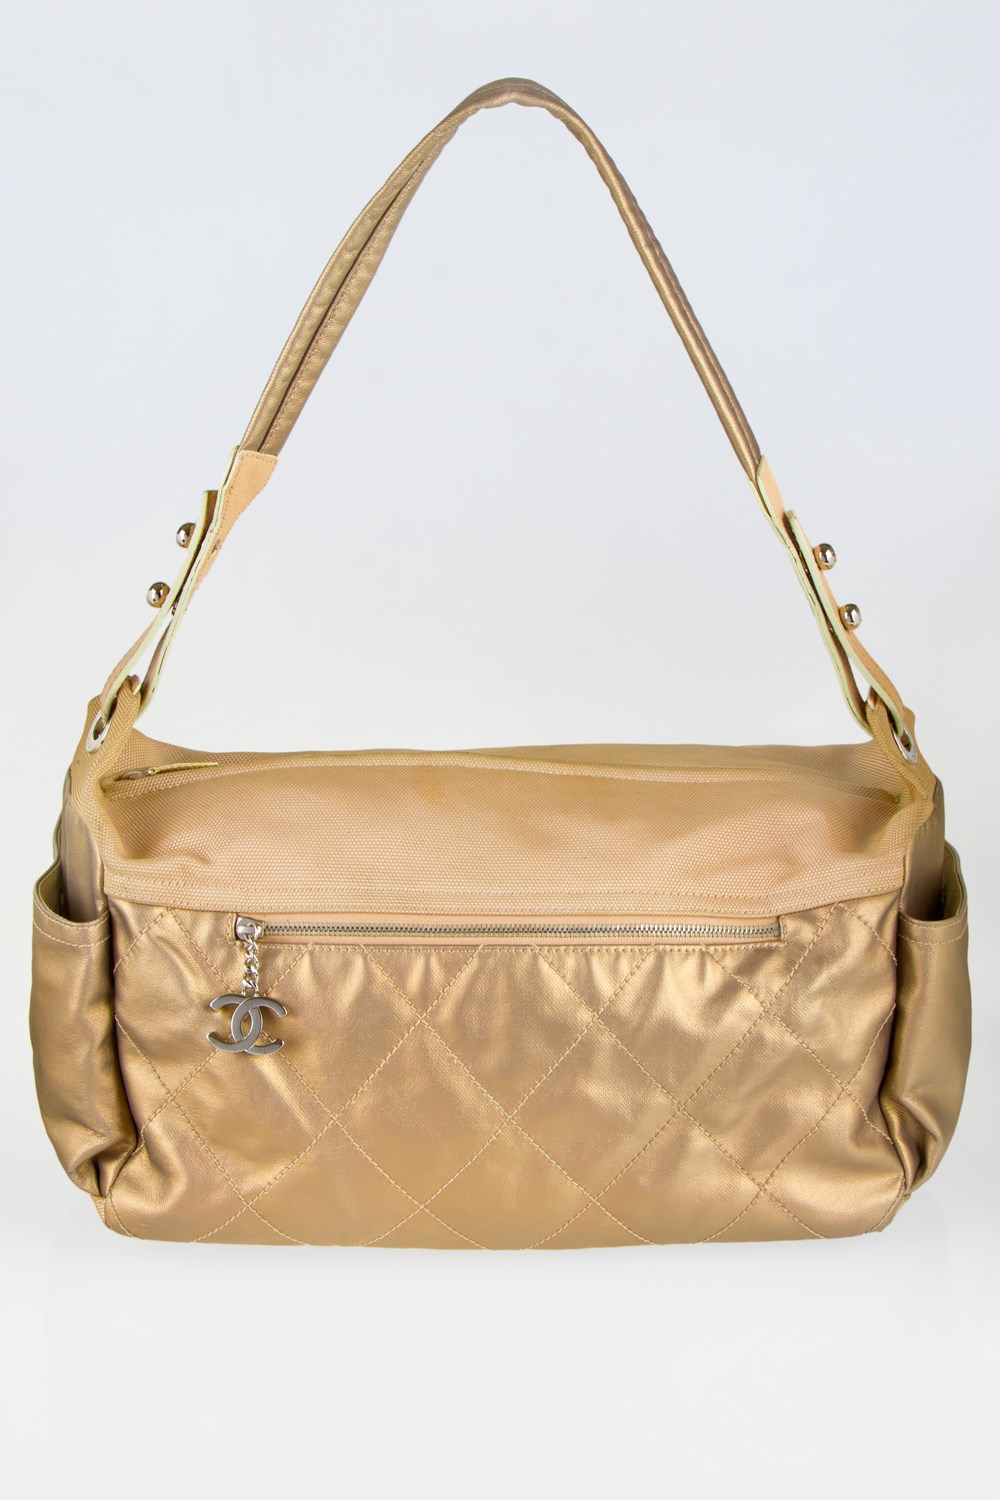 john leather dkny johnlewis online pdp quilt body barbara main handbags quilted com black at lewis cross rsp buydkny bag